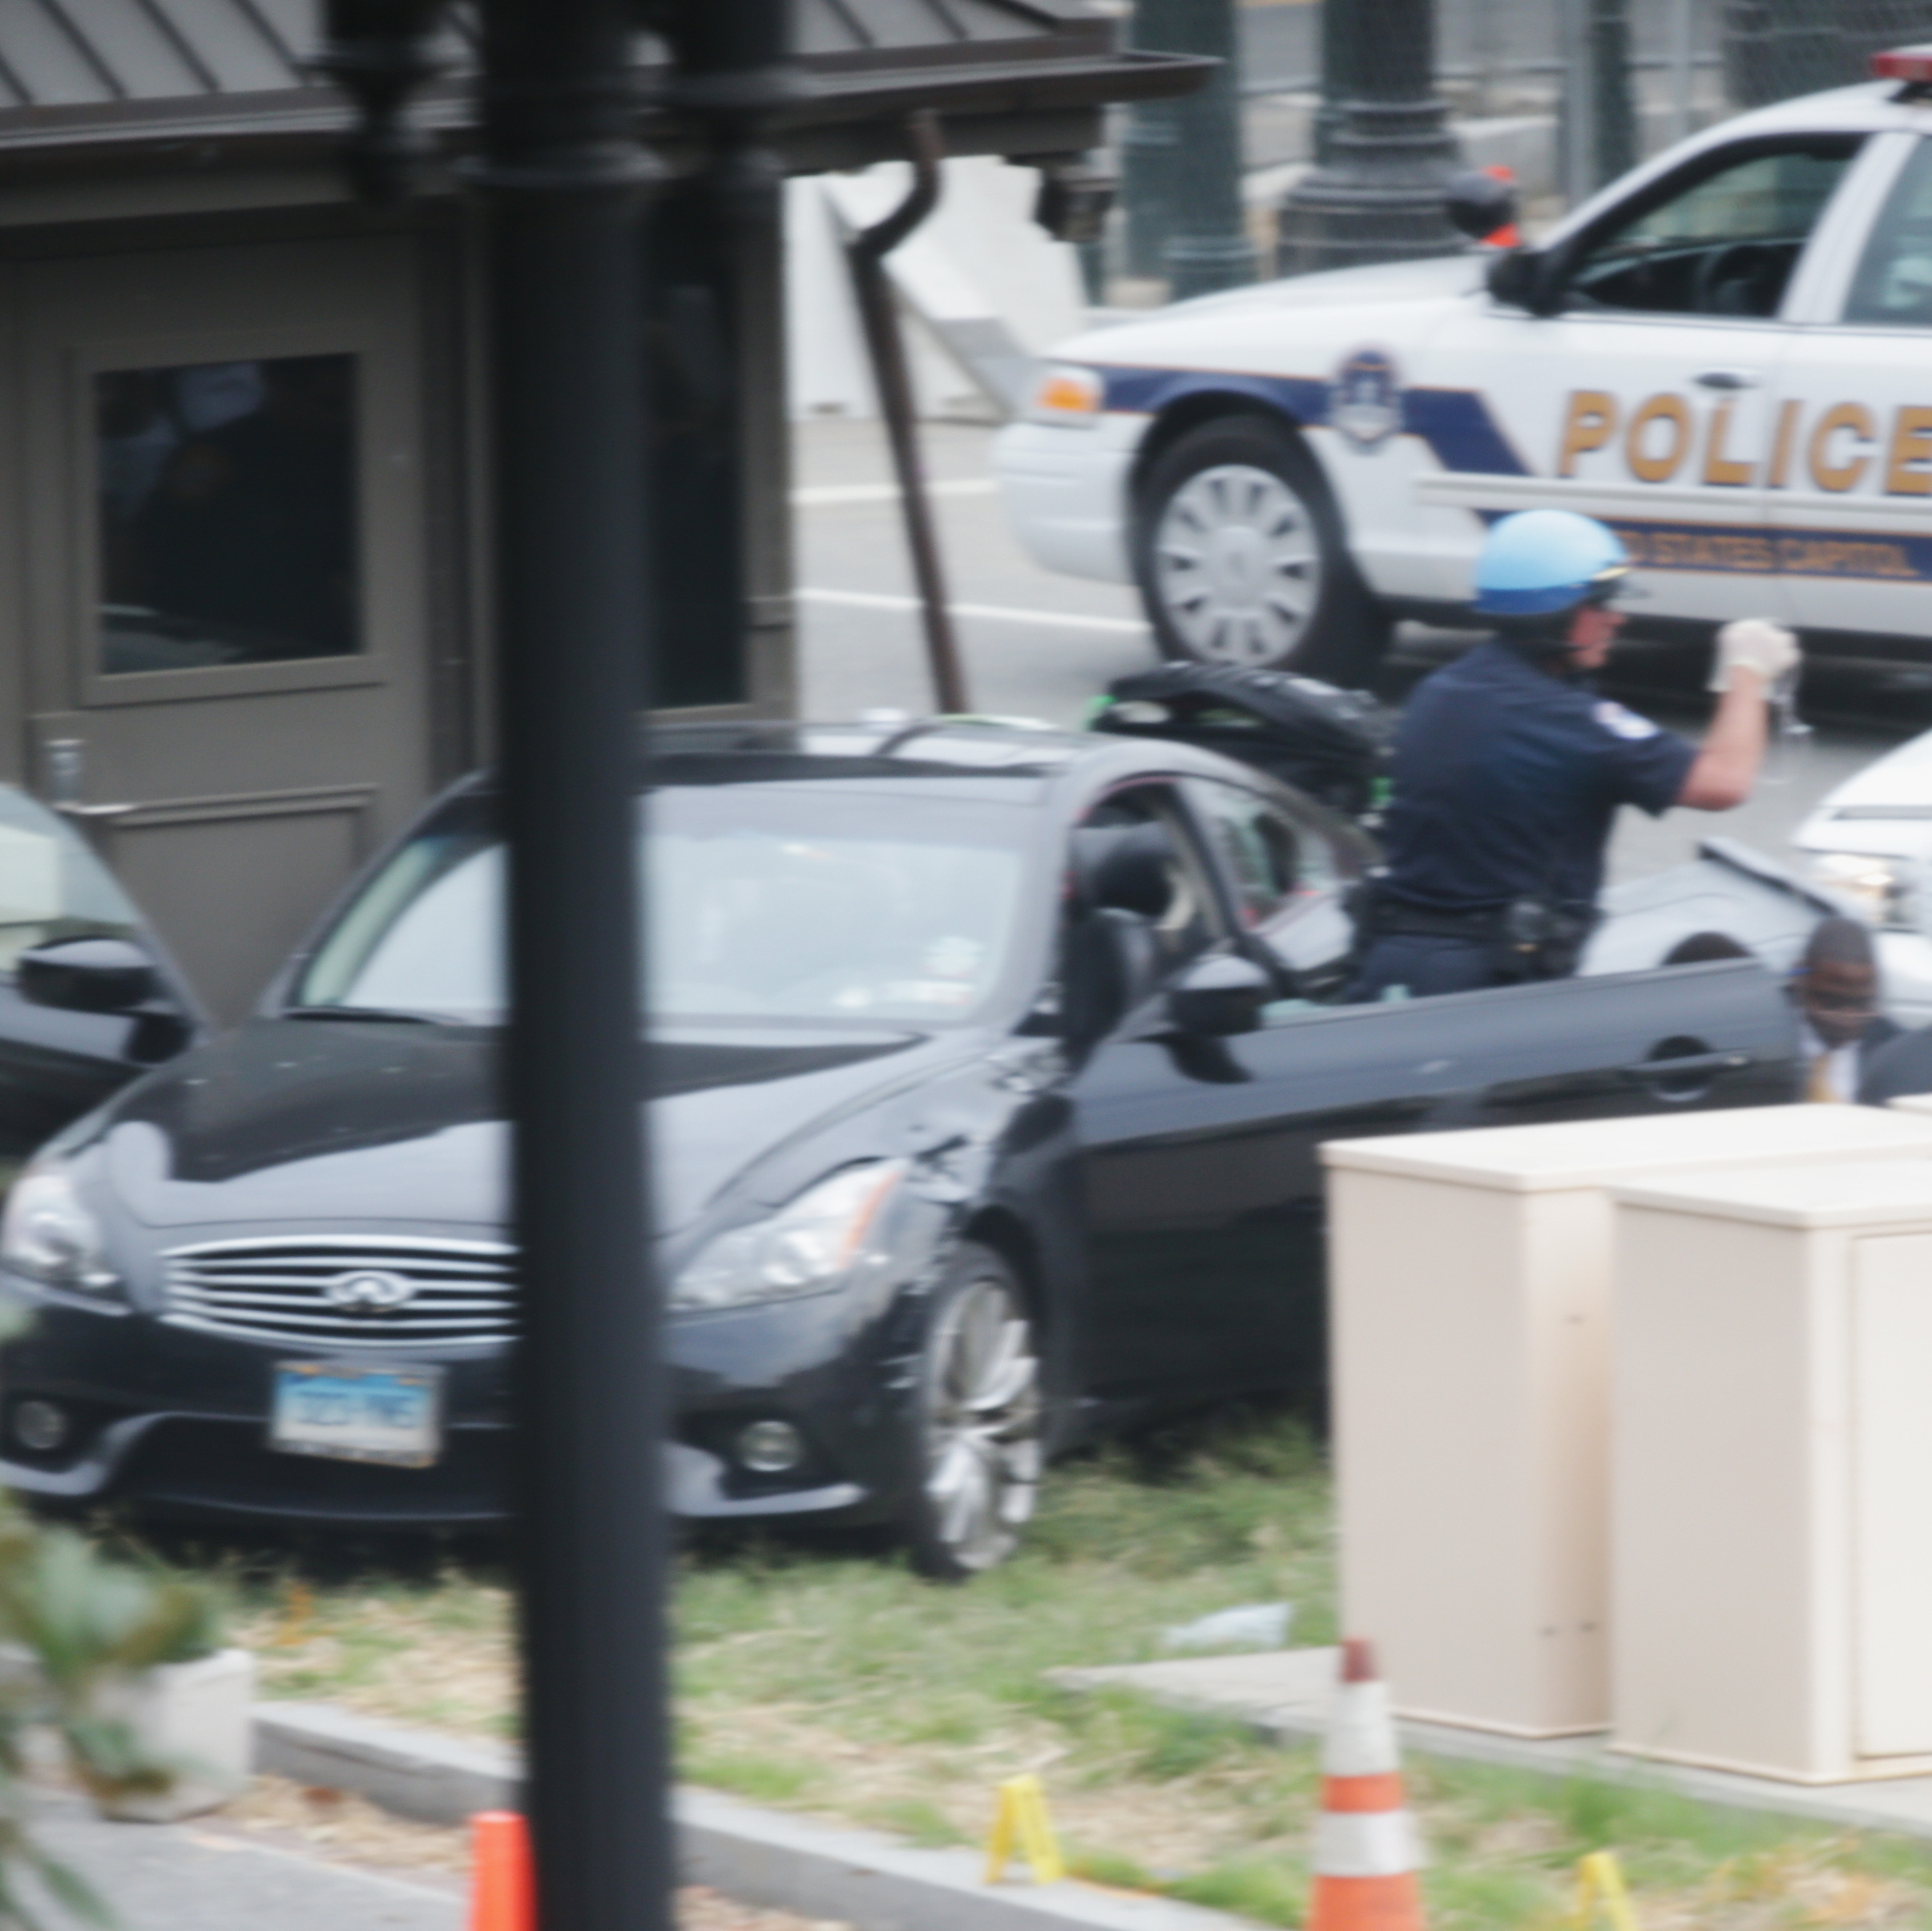 Police swarm around car on grass near the U.S. Capitol on Thursday. The suspect's black Infiniti is shown.